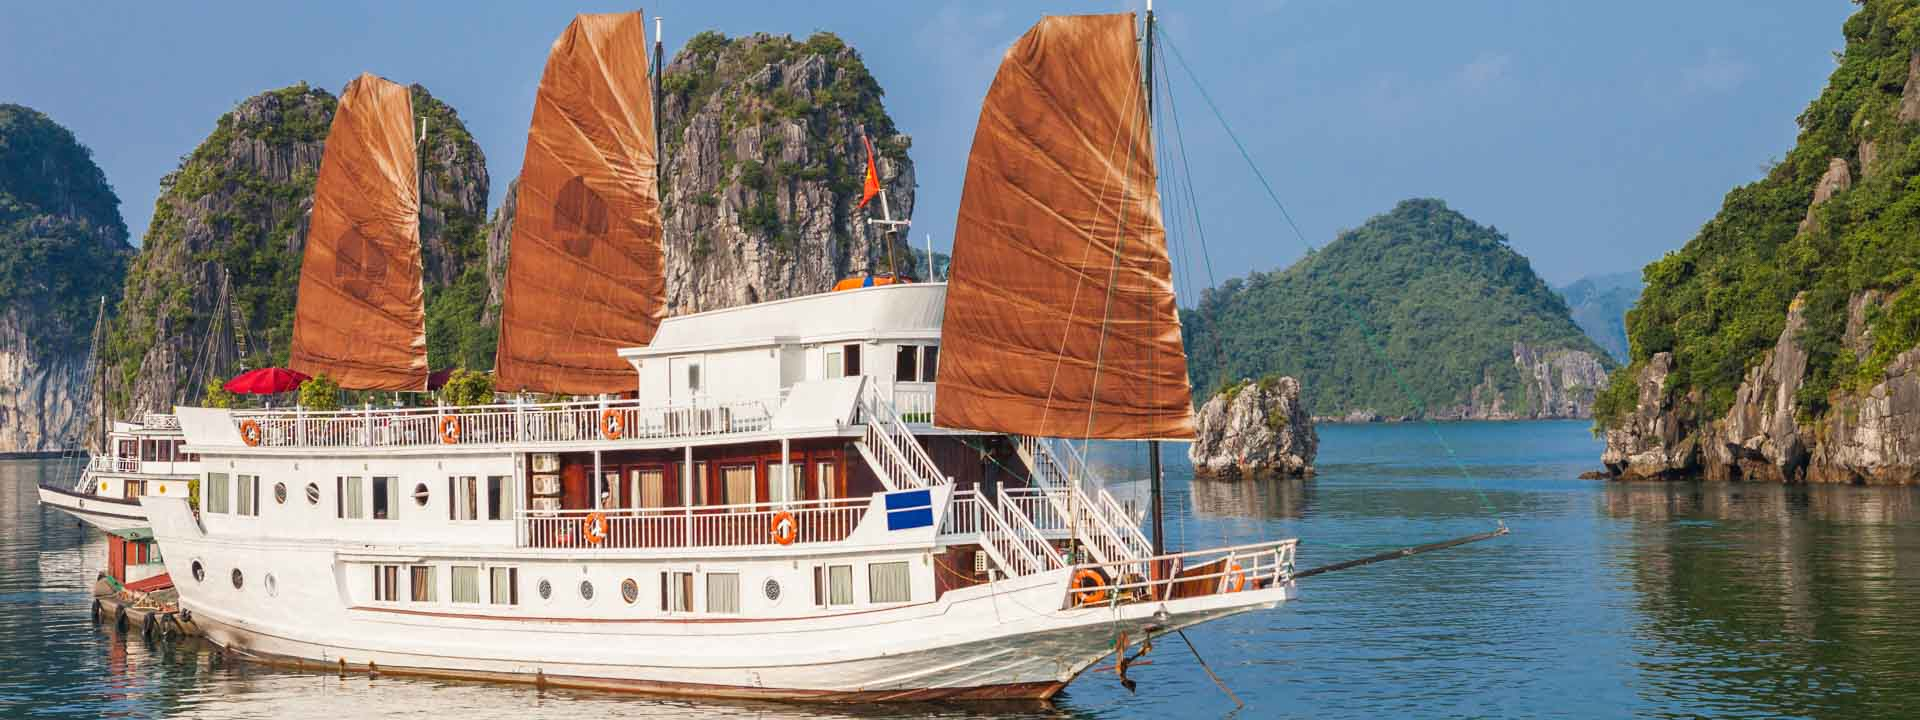 Discover Hanoi Charms & Halong Bay Cruise in Style 6 days